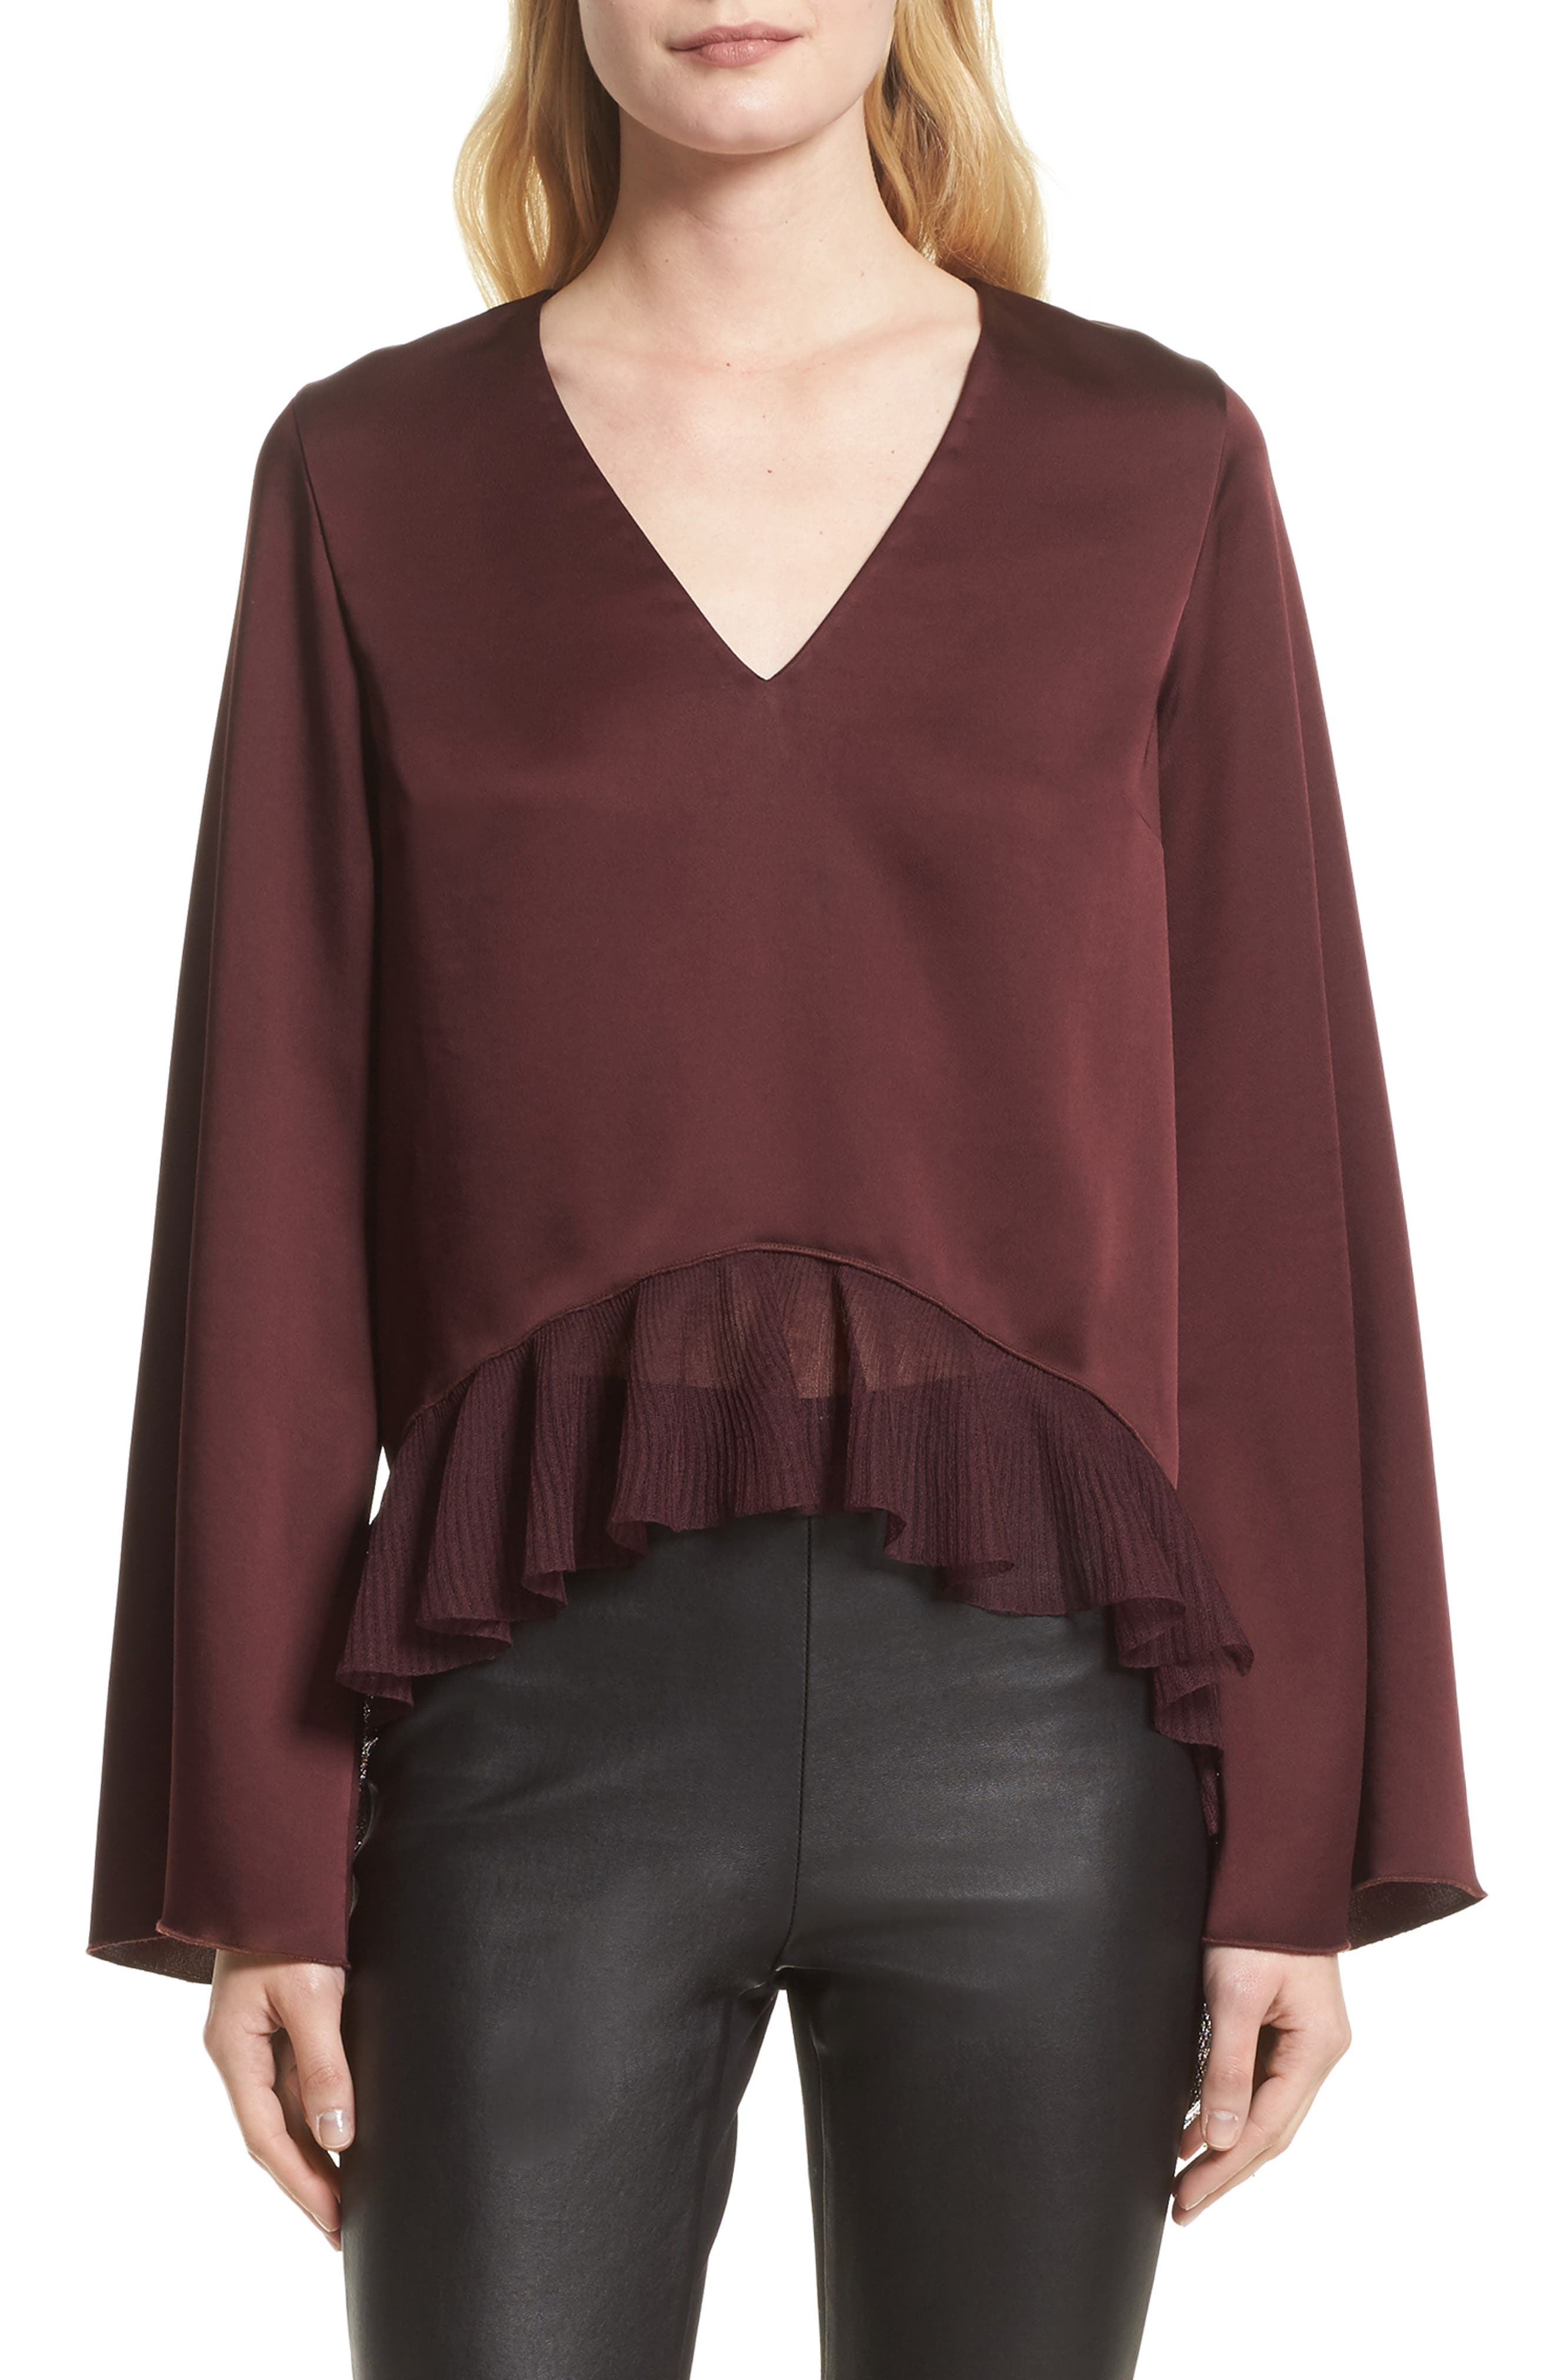 Alternate Image 1 Selected - Elizabeth and James Heath Ruffle Hem Top (Nordstrom Exclusive)